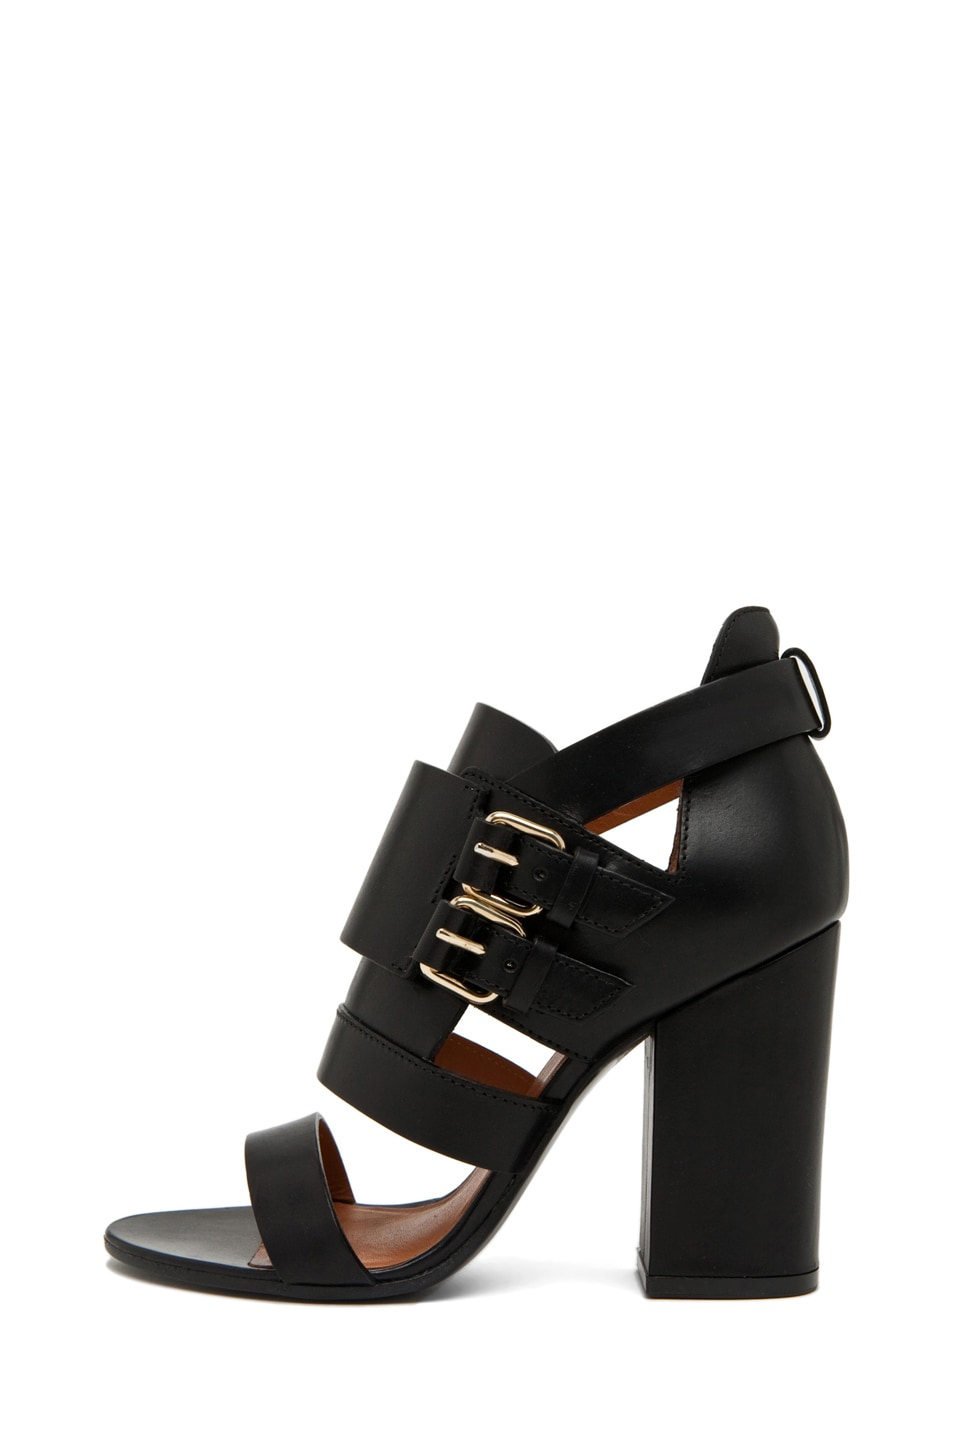 Image 1 of GIVENCHY Vittorias Heel in Black